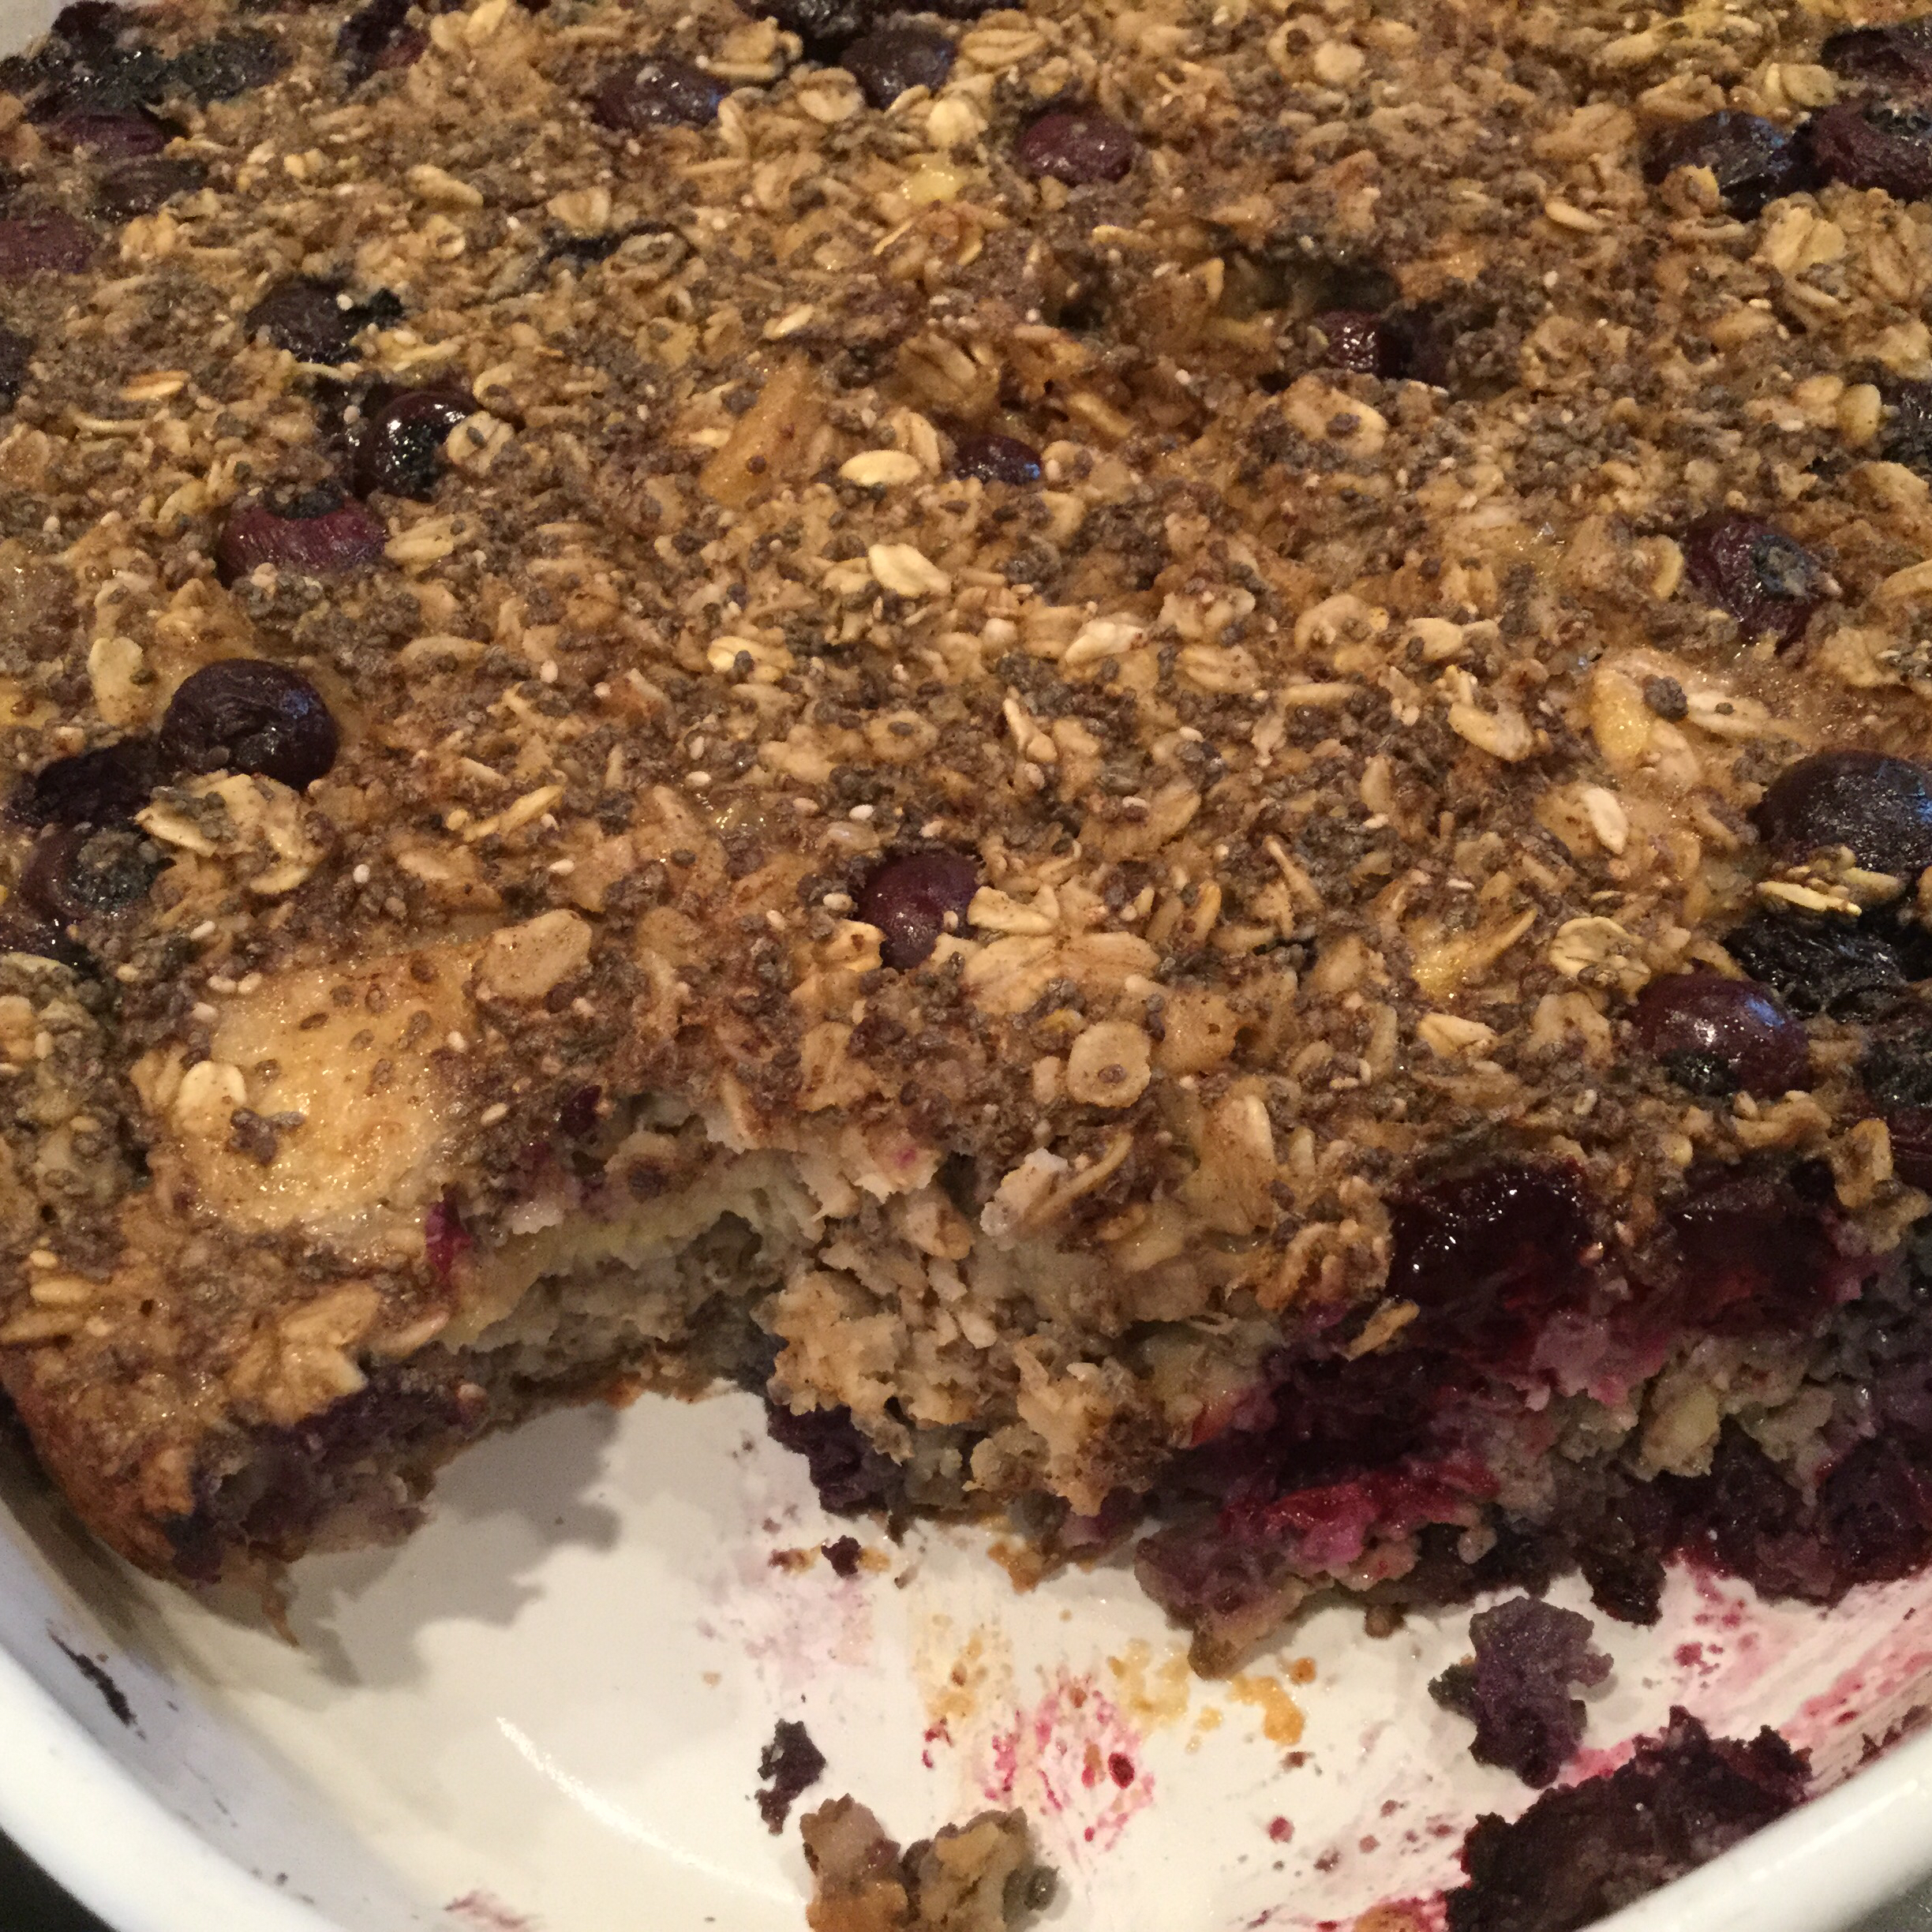 Blueberry Oatmeal Breakfast Bars Becky Pumphrey Hannahs